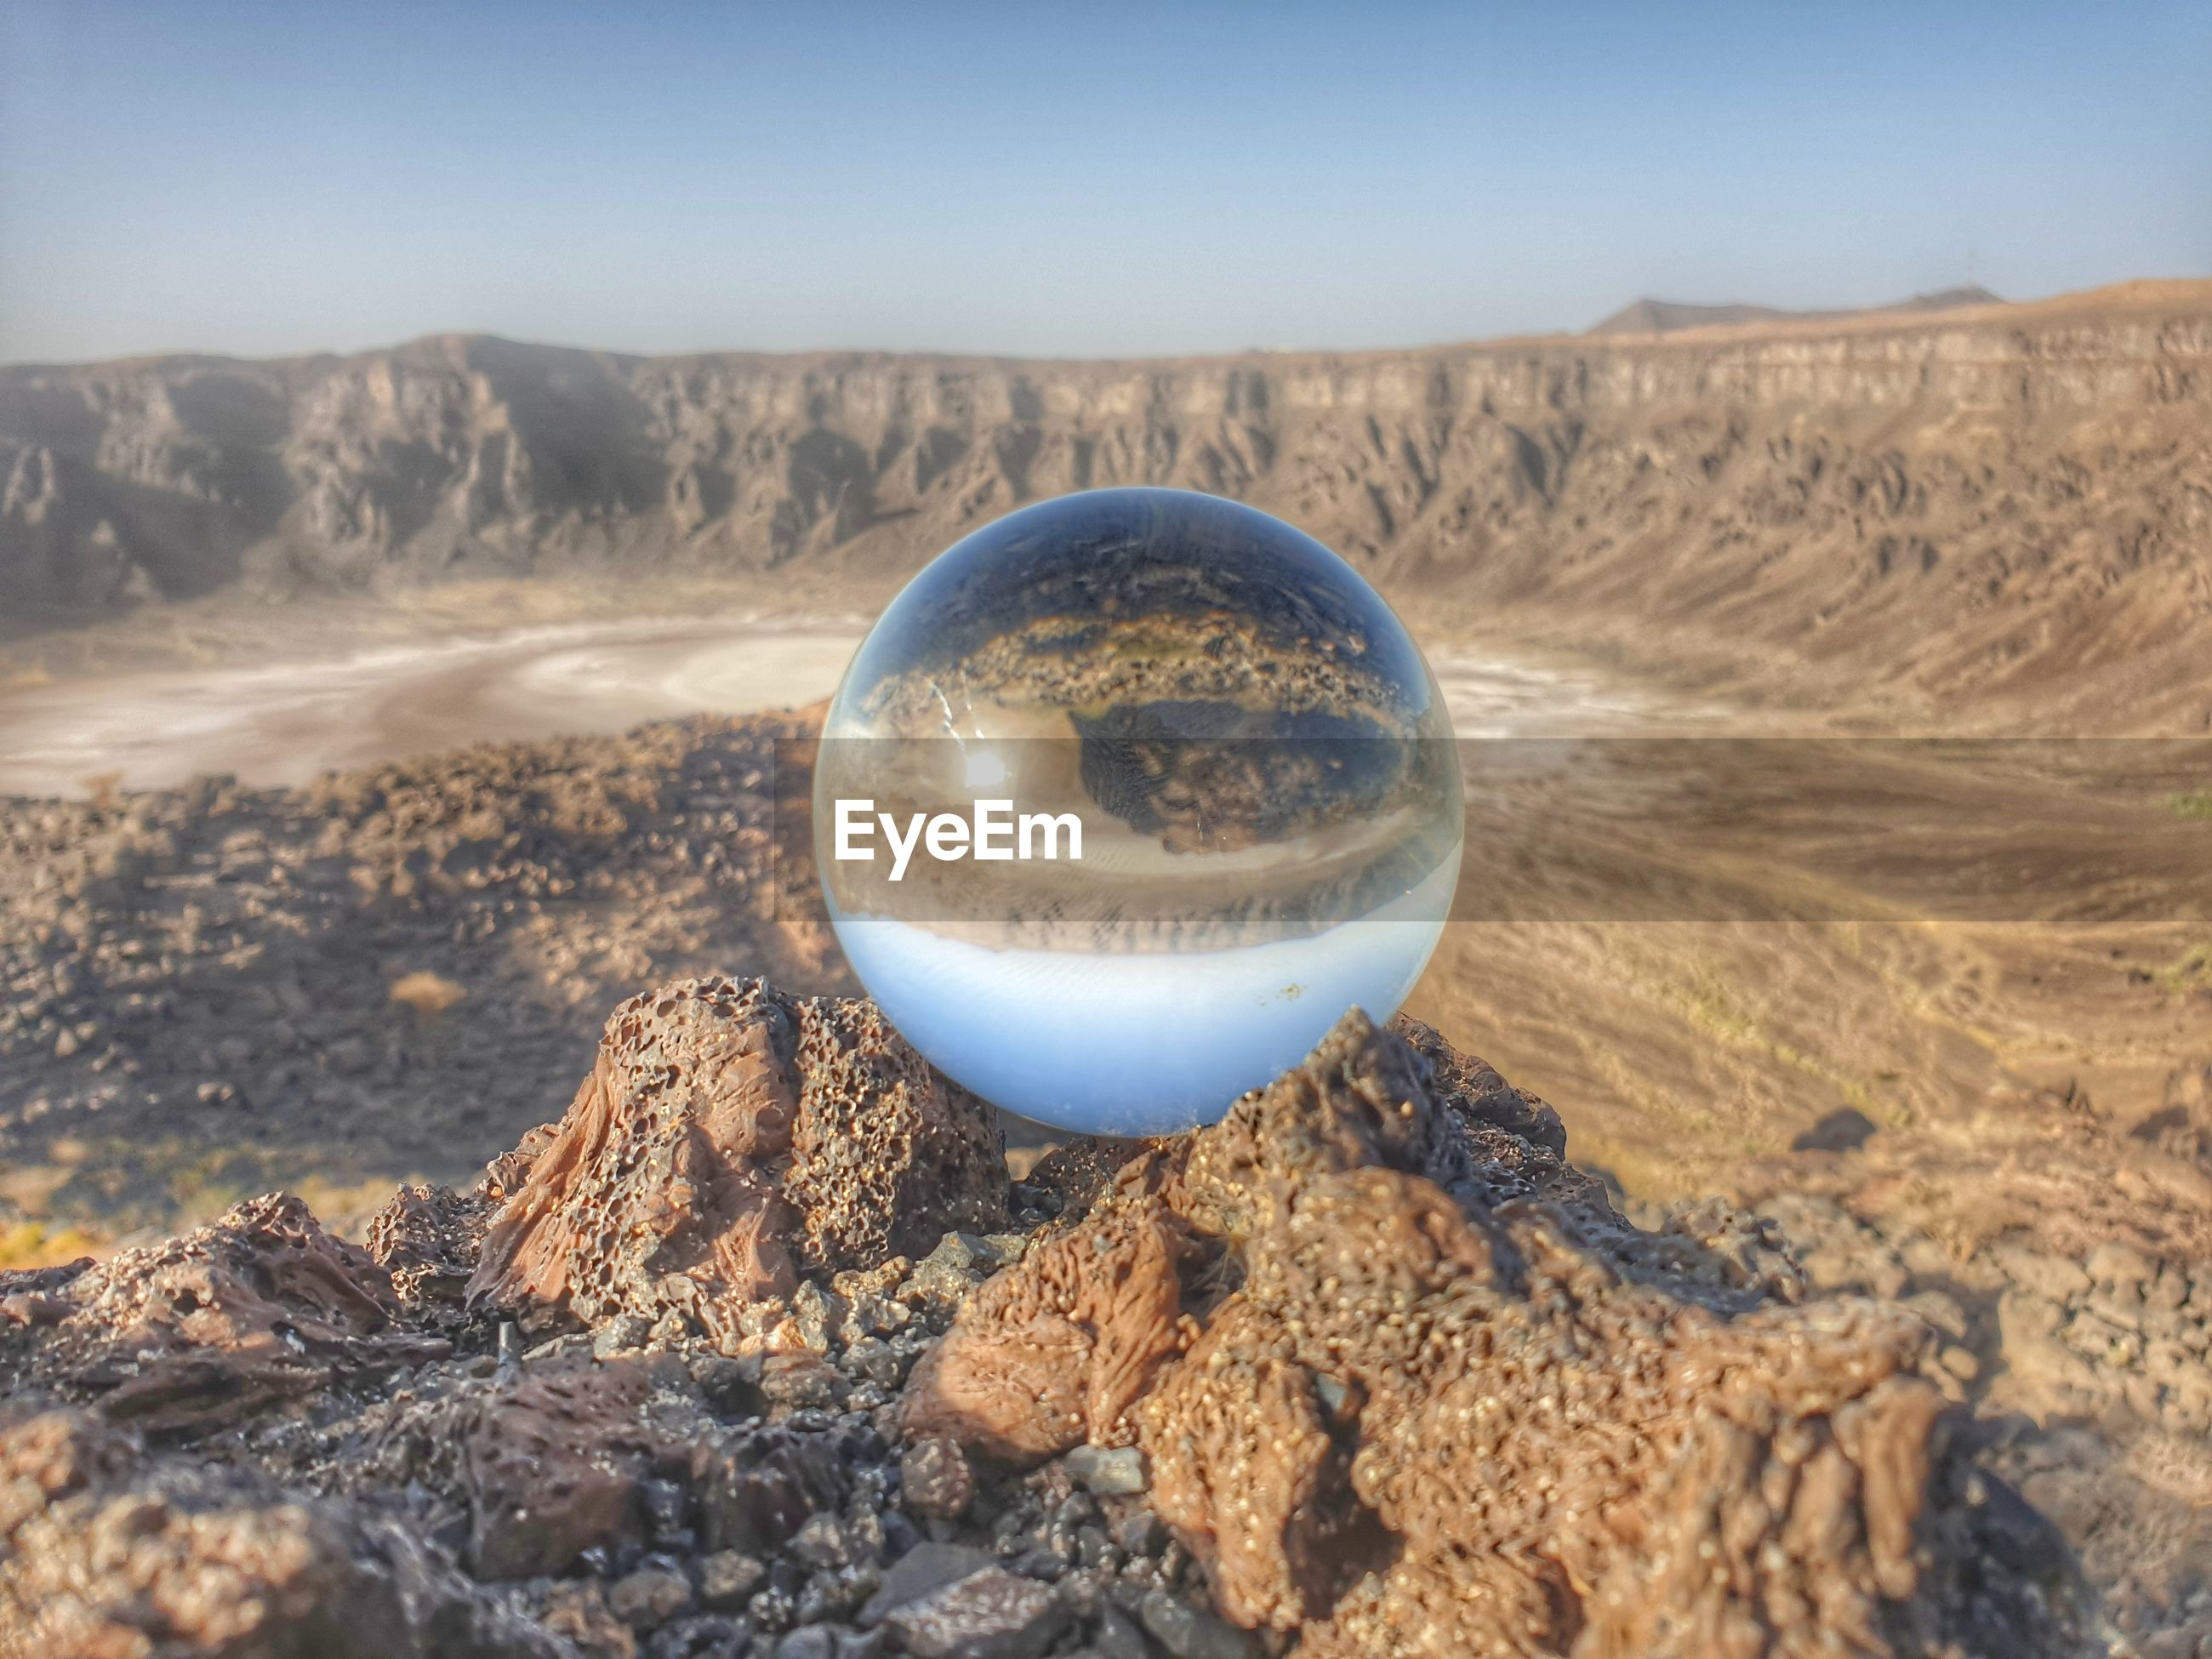 CLOSE-UP OF CRYSTAL BALL ON ROCK IN DESERT